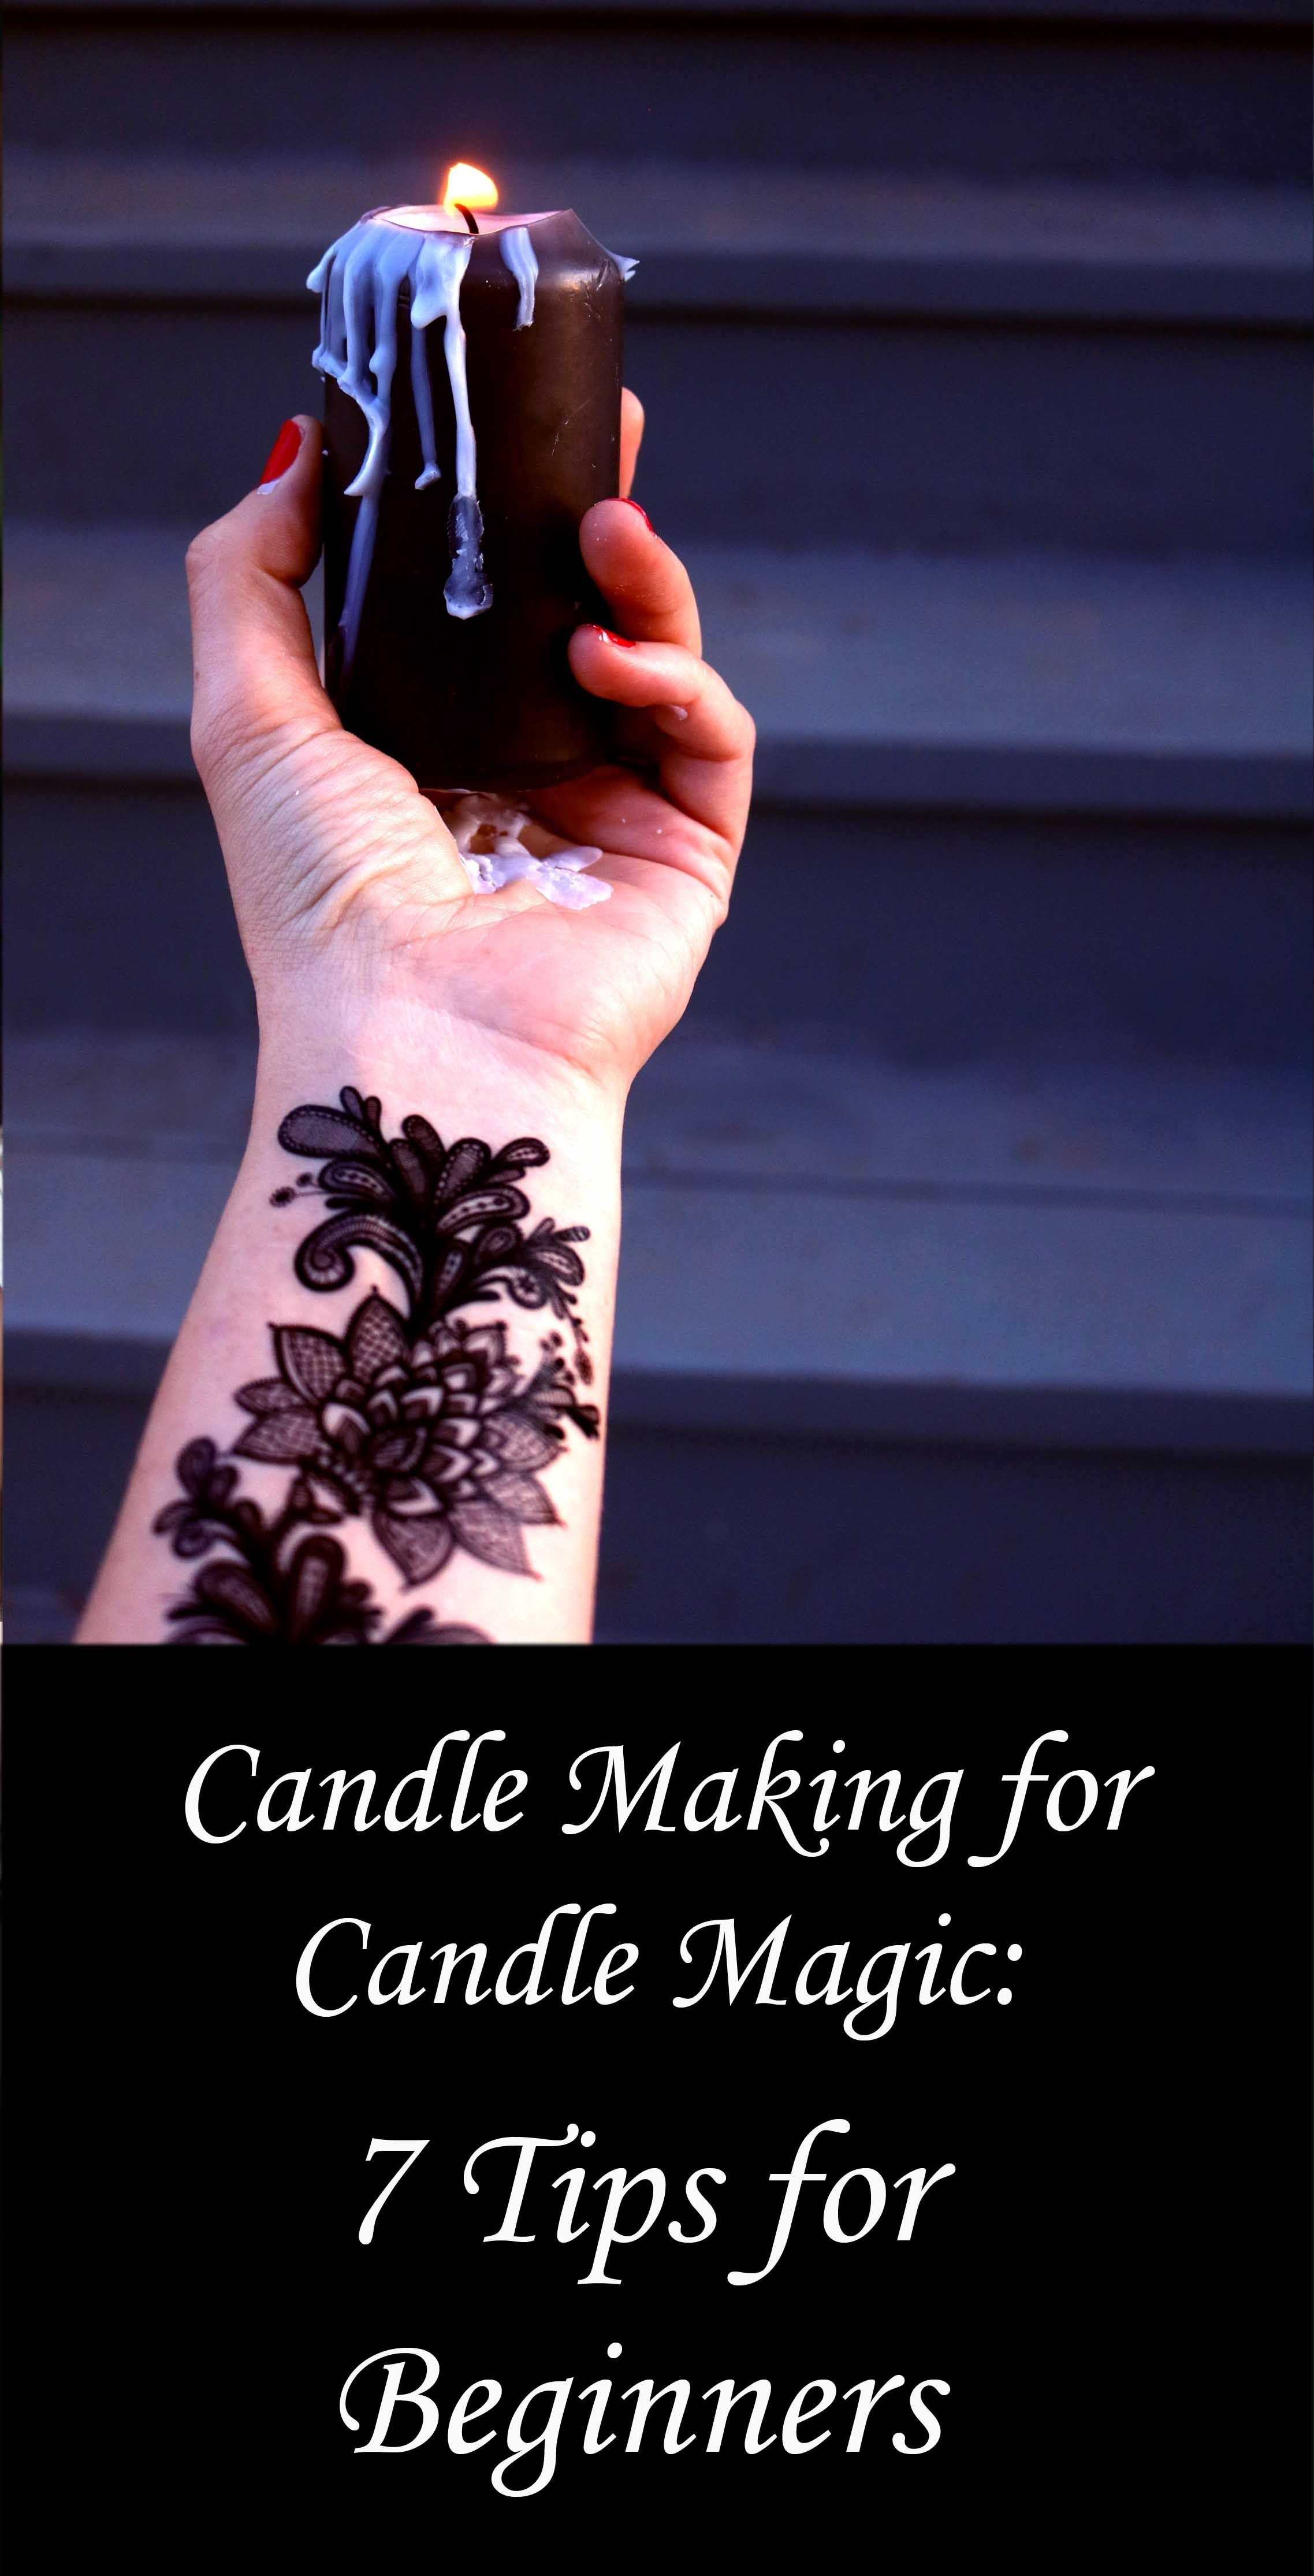 Candle Making for Candle Magic: 7 Tips for Beginners and Advanced Practitioners #candlemakingbusiness